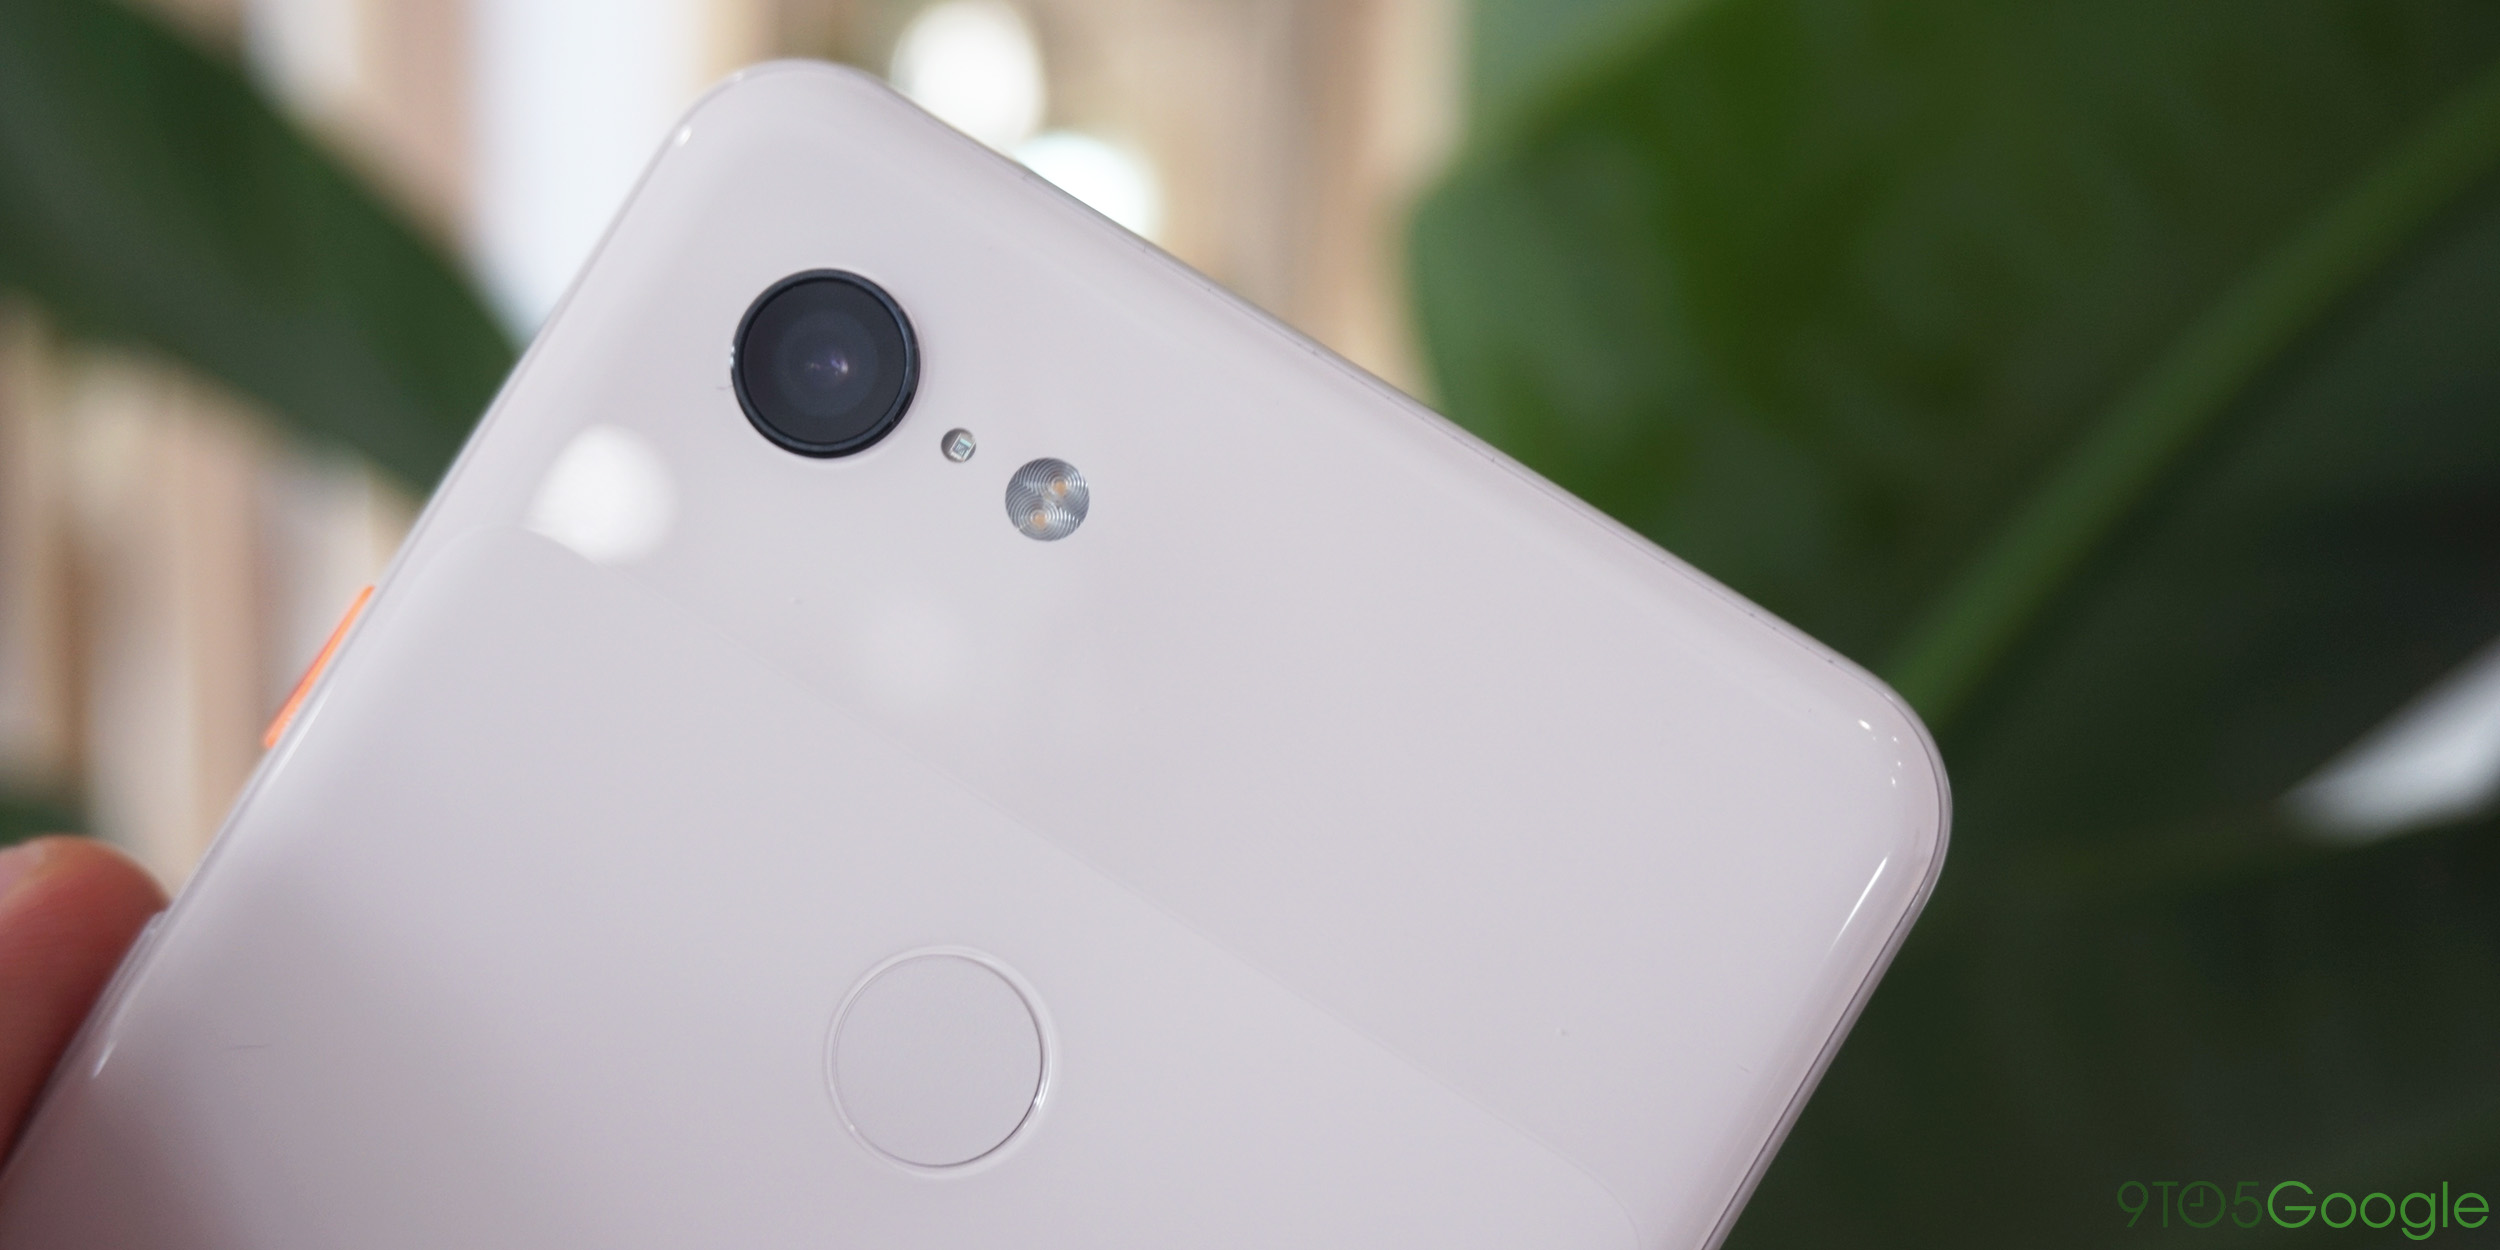 Google Pixel 3 XL: News, Specs, Where to Buy, Tips, Problems